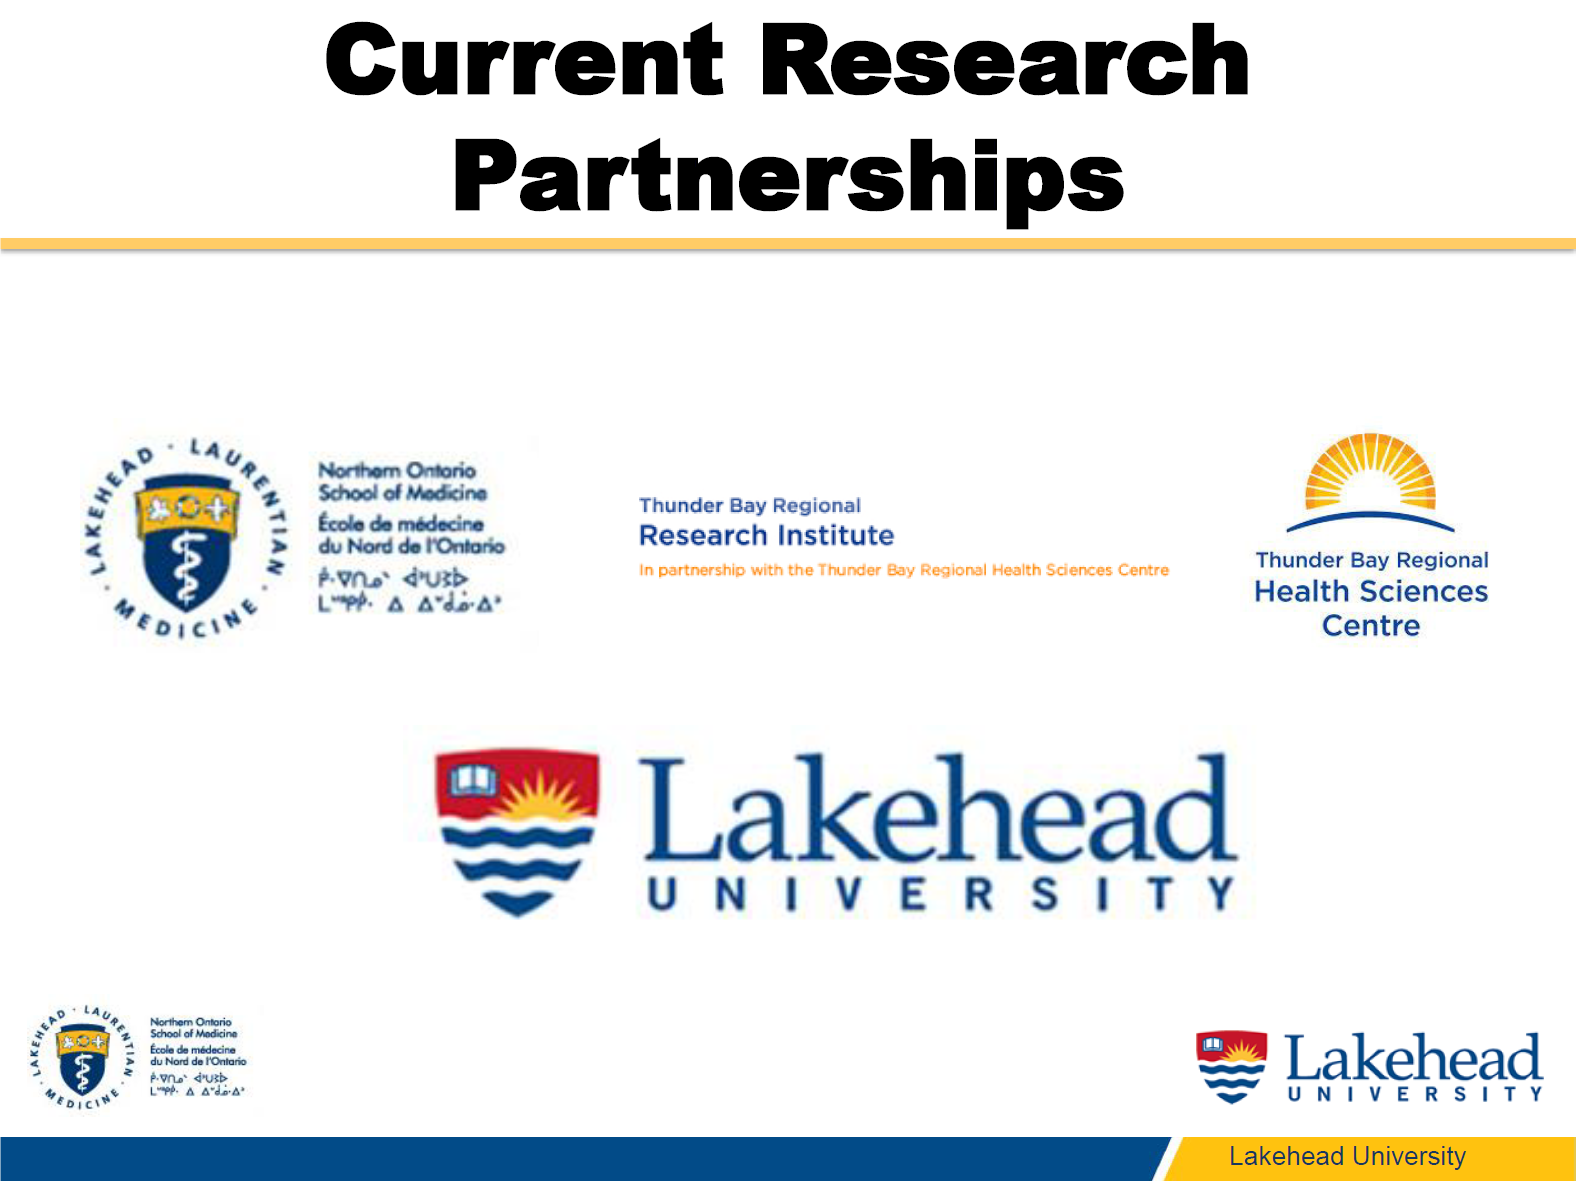 Dr. Sanzo Current Research Partnerships